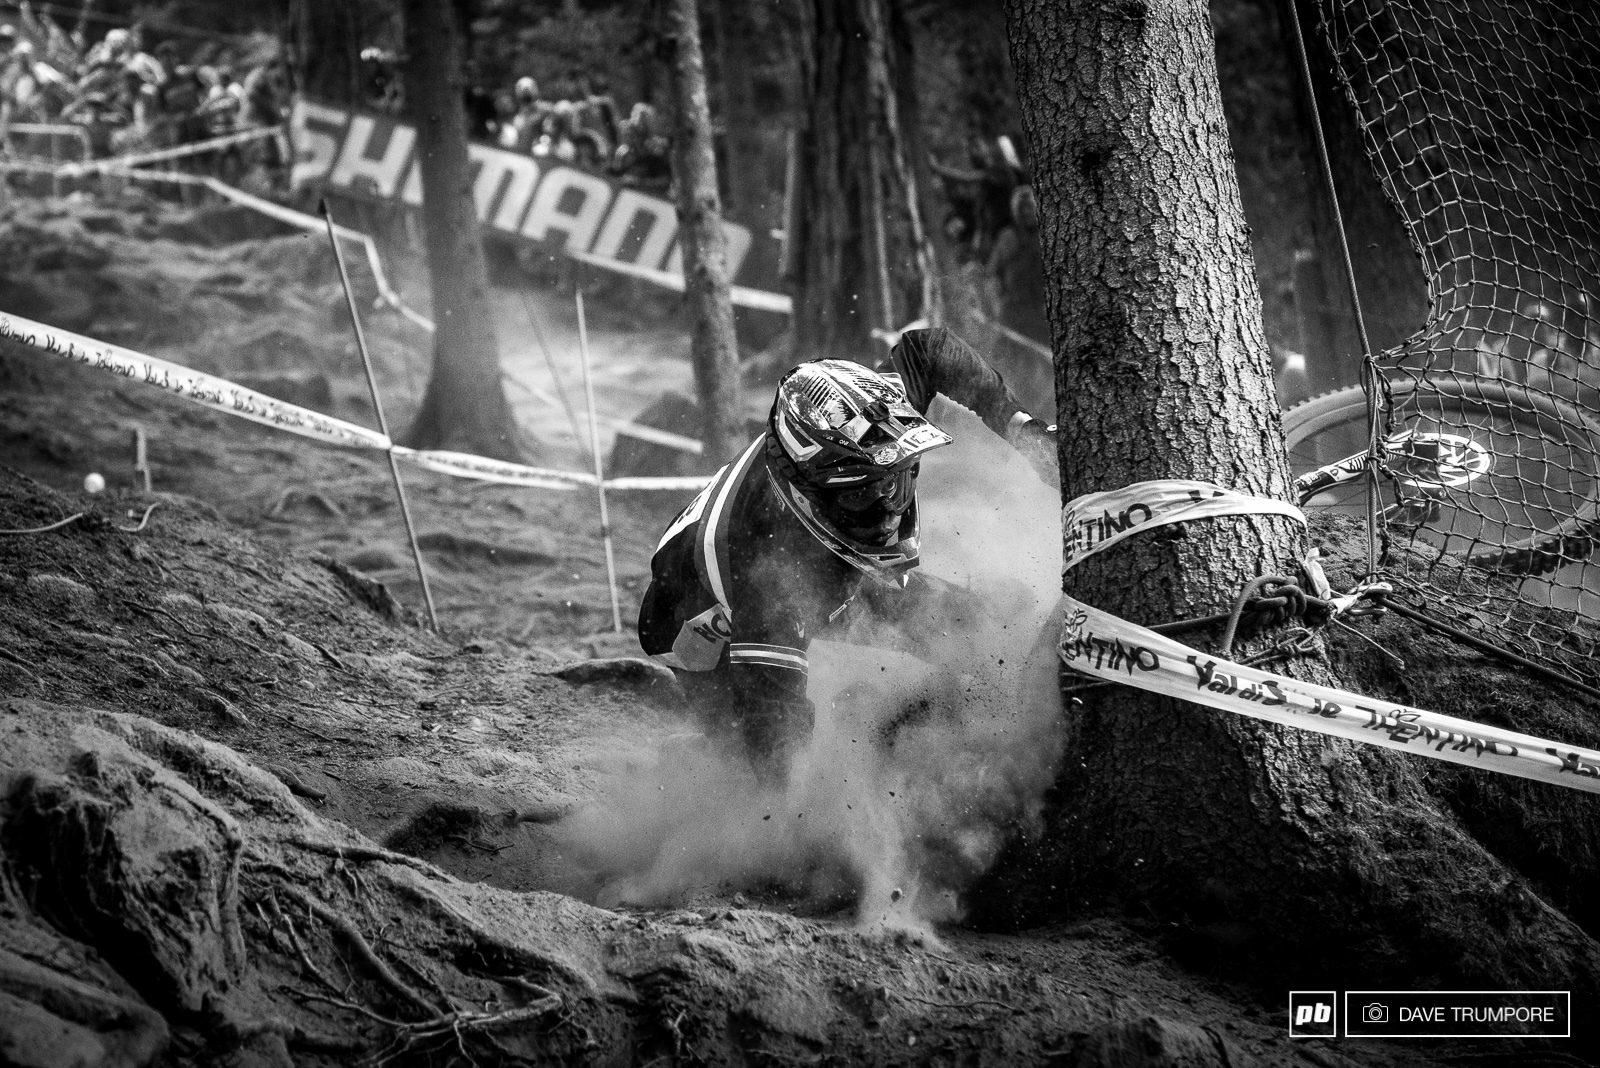 Loris showed flashes of brilliance this season but his hopes to end 2016 with a World Championship medal when down in a blaze of glory today.